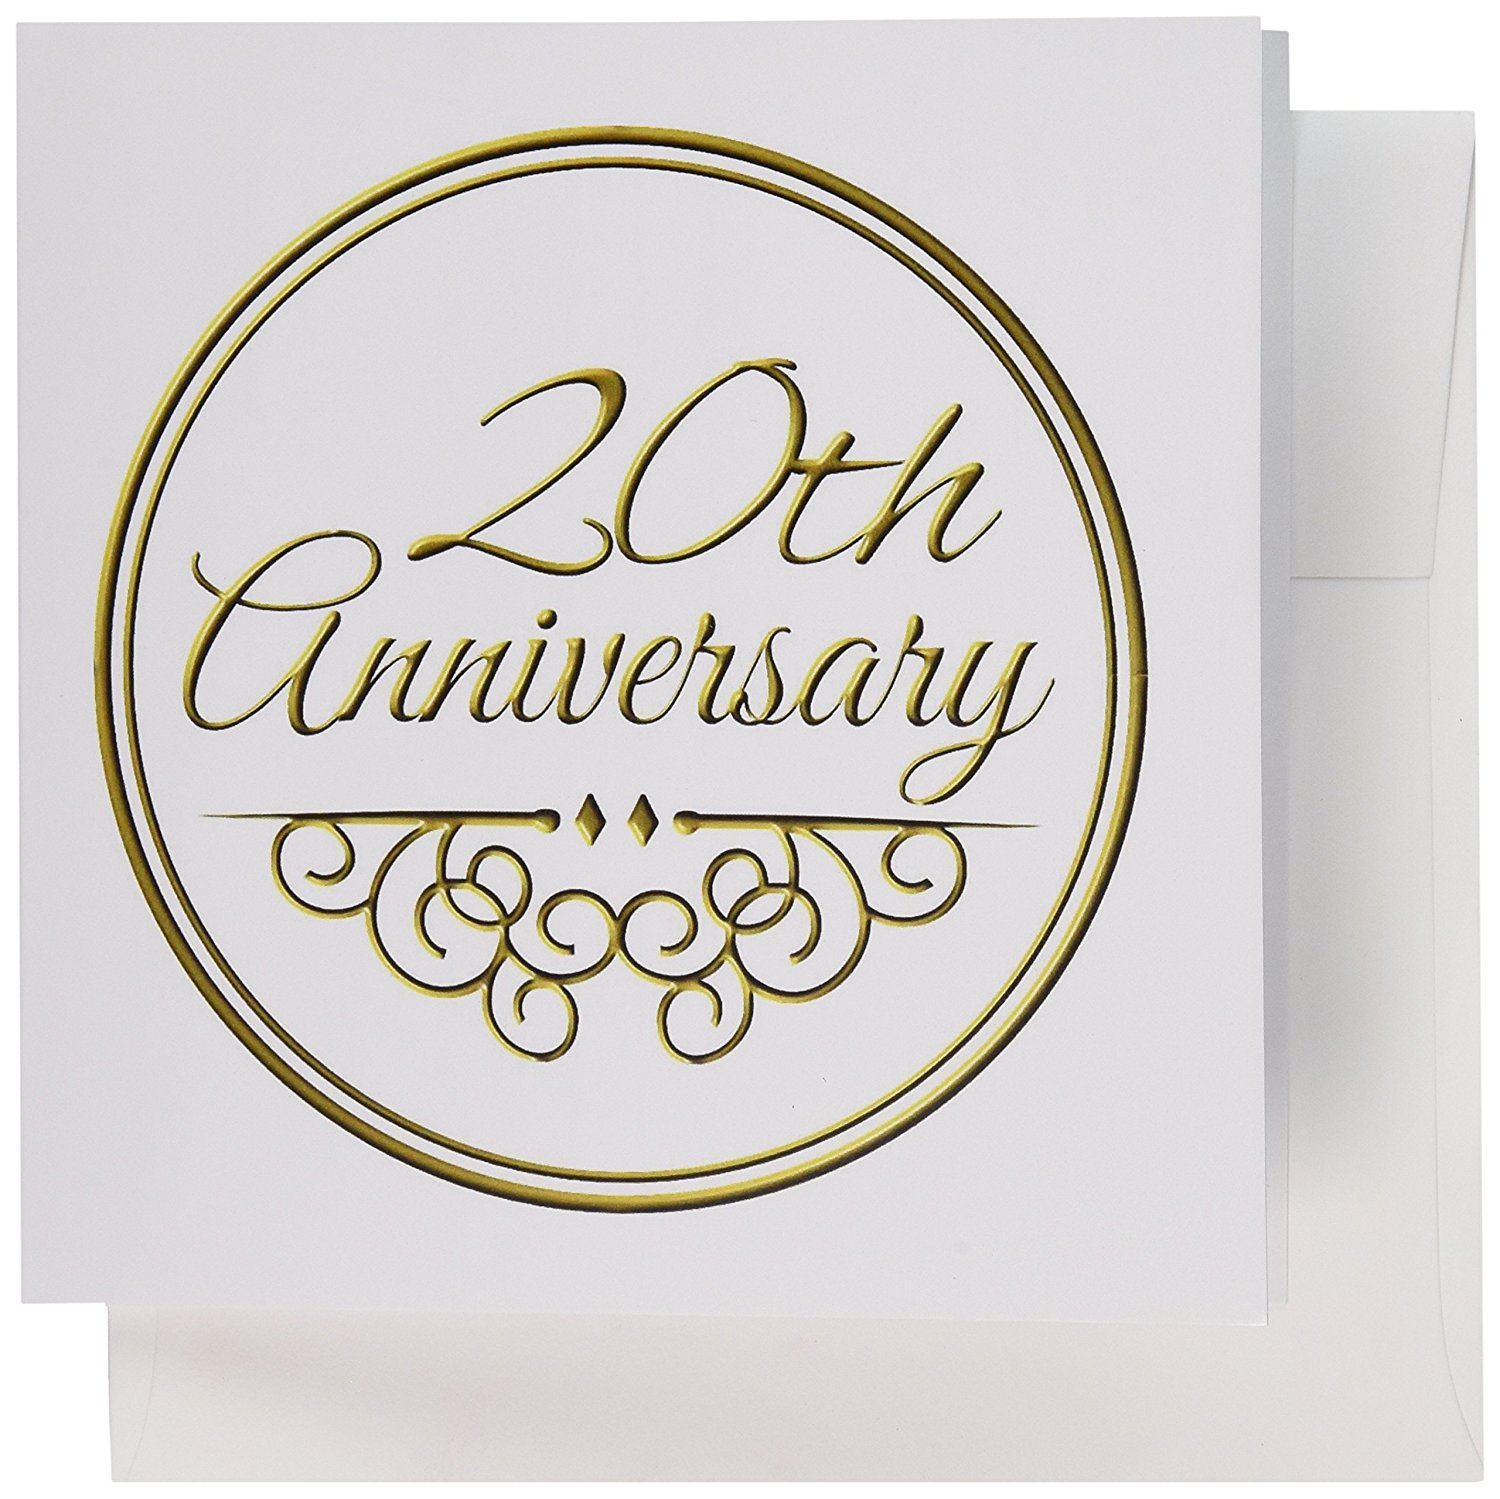 Cheap wedding greeting cards find wedding greeting cards deals on get quotations 3drose 20th anniversary gift gold text for celebrating wedding anniversaries greeting cards 6 kristyandbryce Images